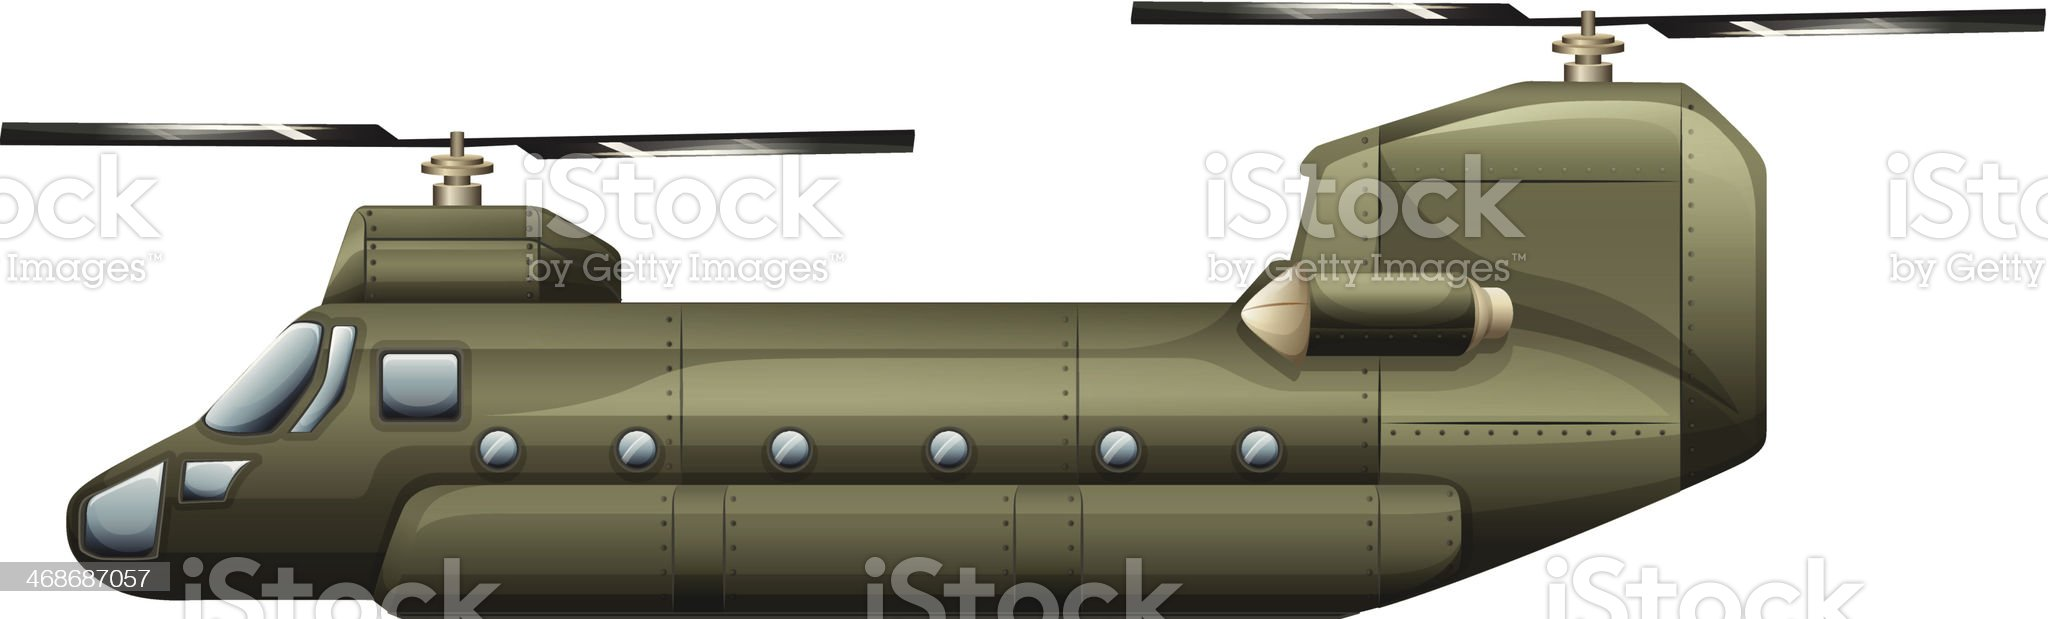 rotorcraft royalty-free stock vector art